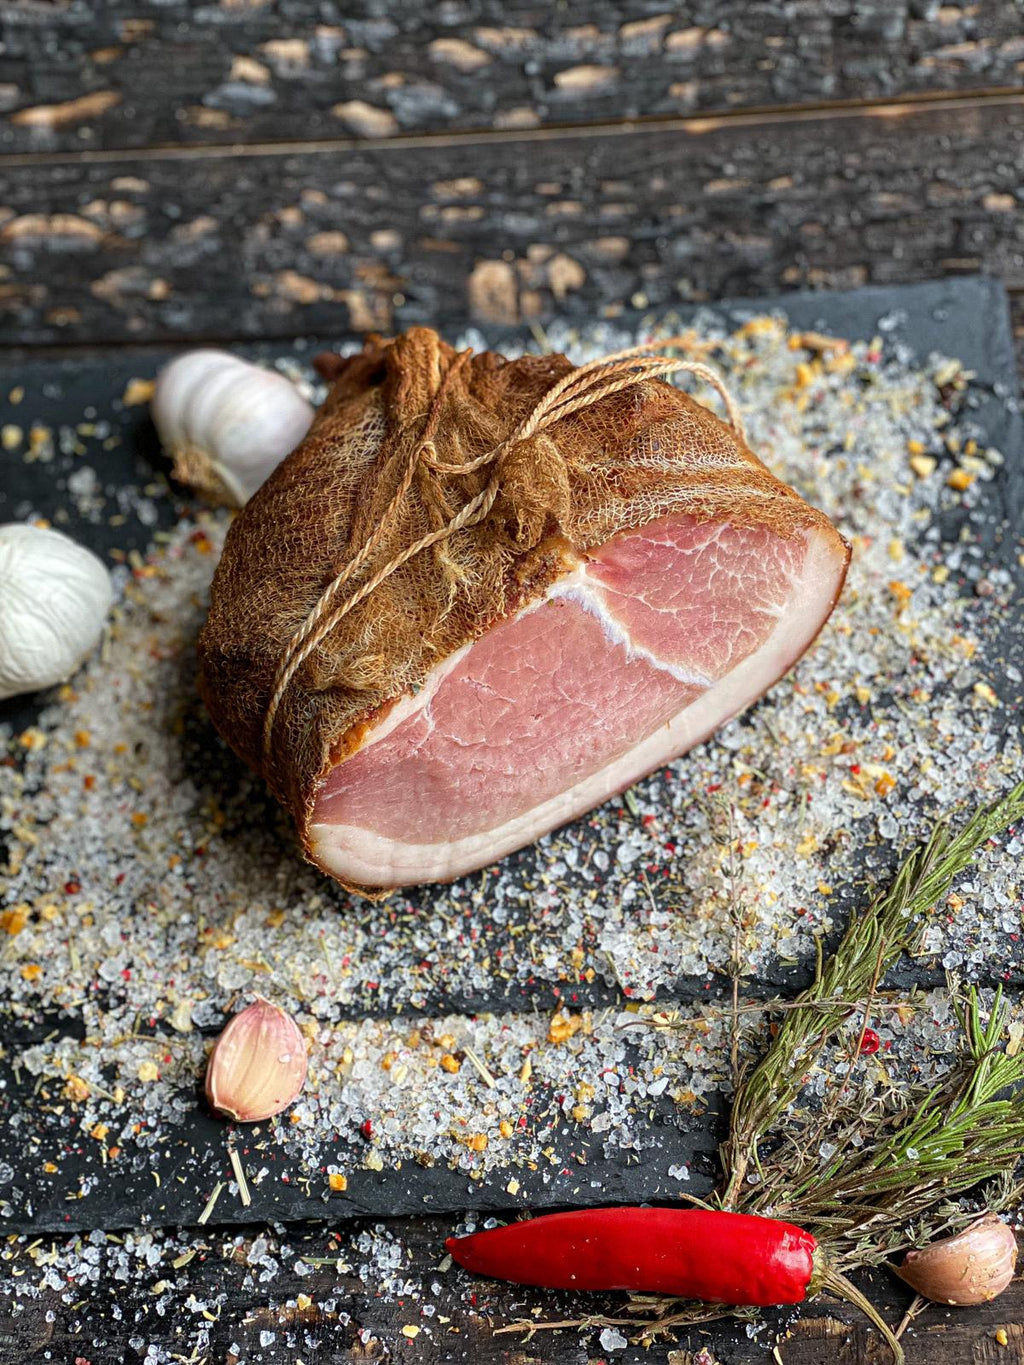 Petro Pork Ham with Fat 1kg - Wild Game Meat